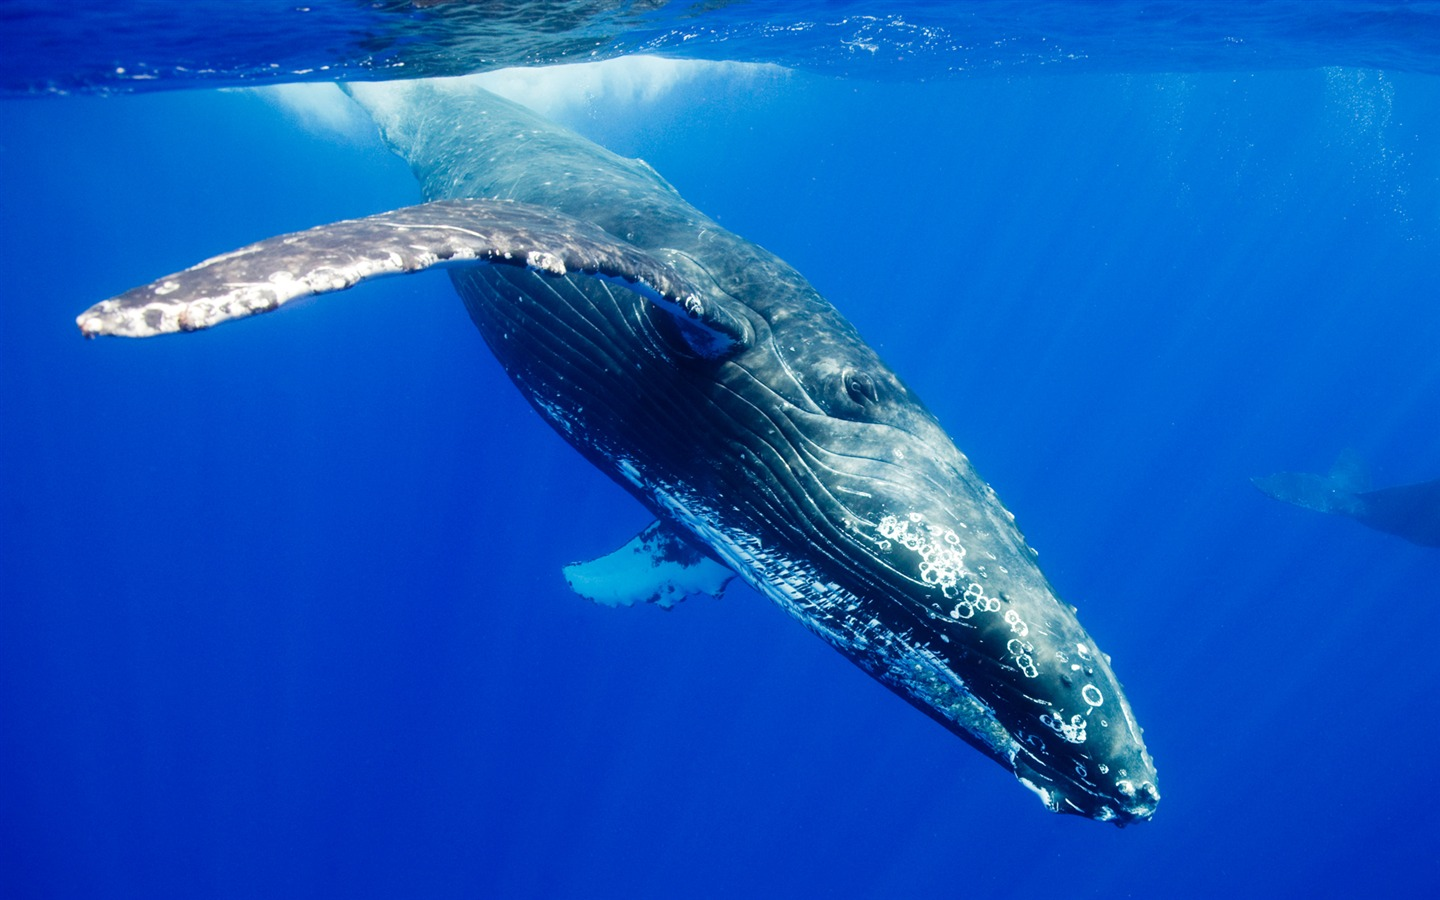 whaling humpback whale and whales This suborder includes the blue whale, the humpback whale, the bowhead whale and the minke whale all cetaceans have forelimbs modified as fins, a tail with horizontal flukes, and nasal openings (blowholes) on top of the head.